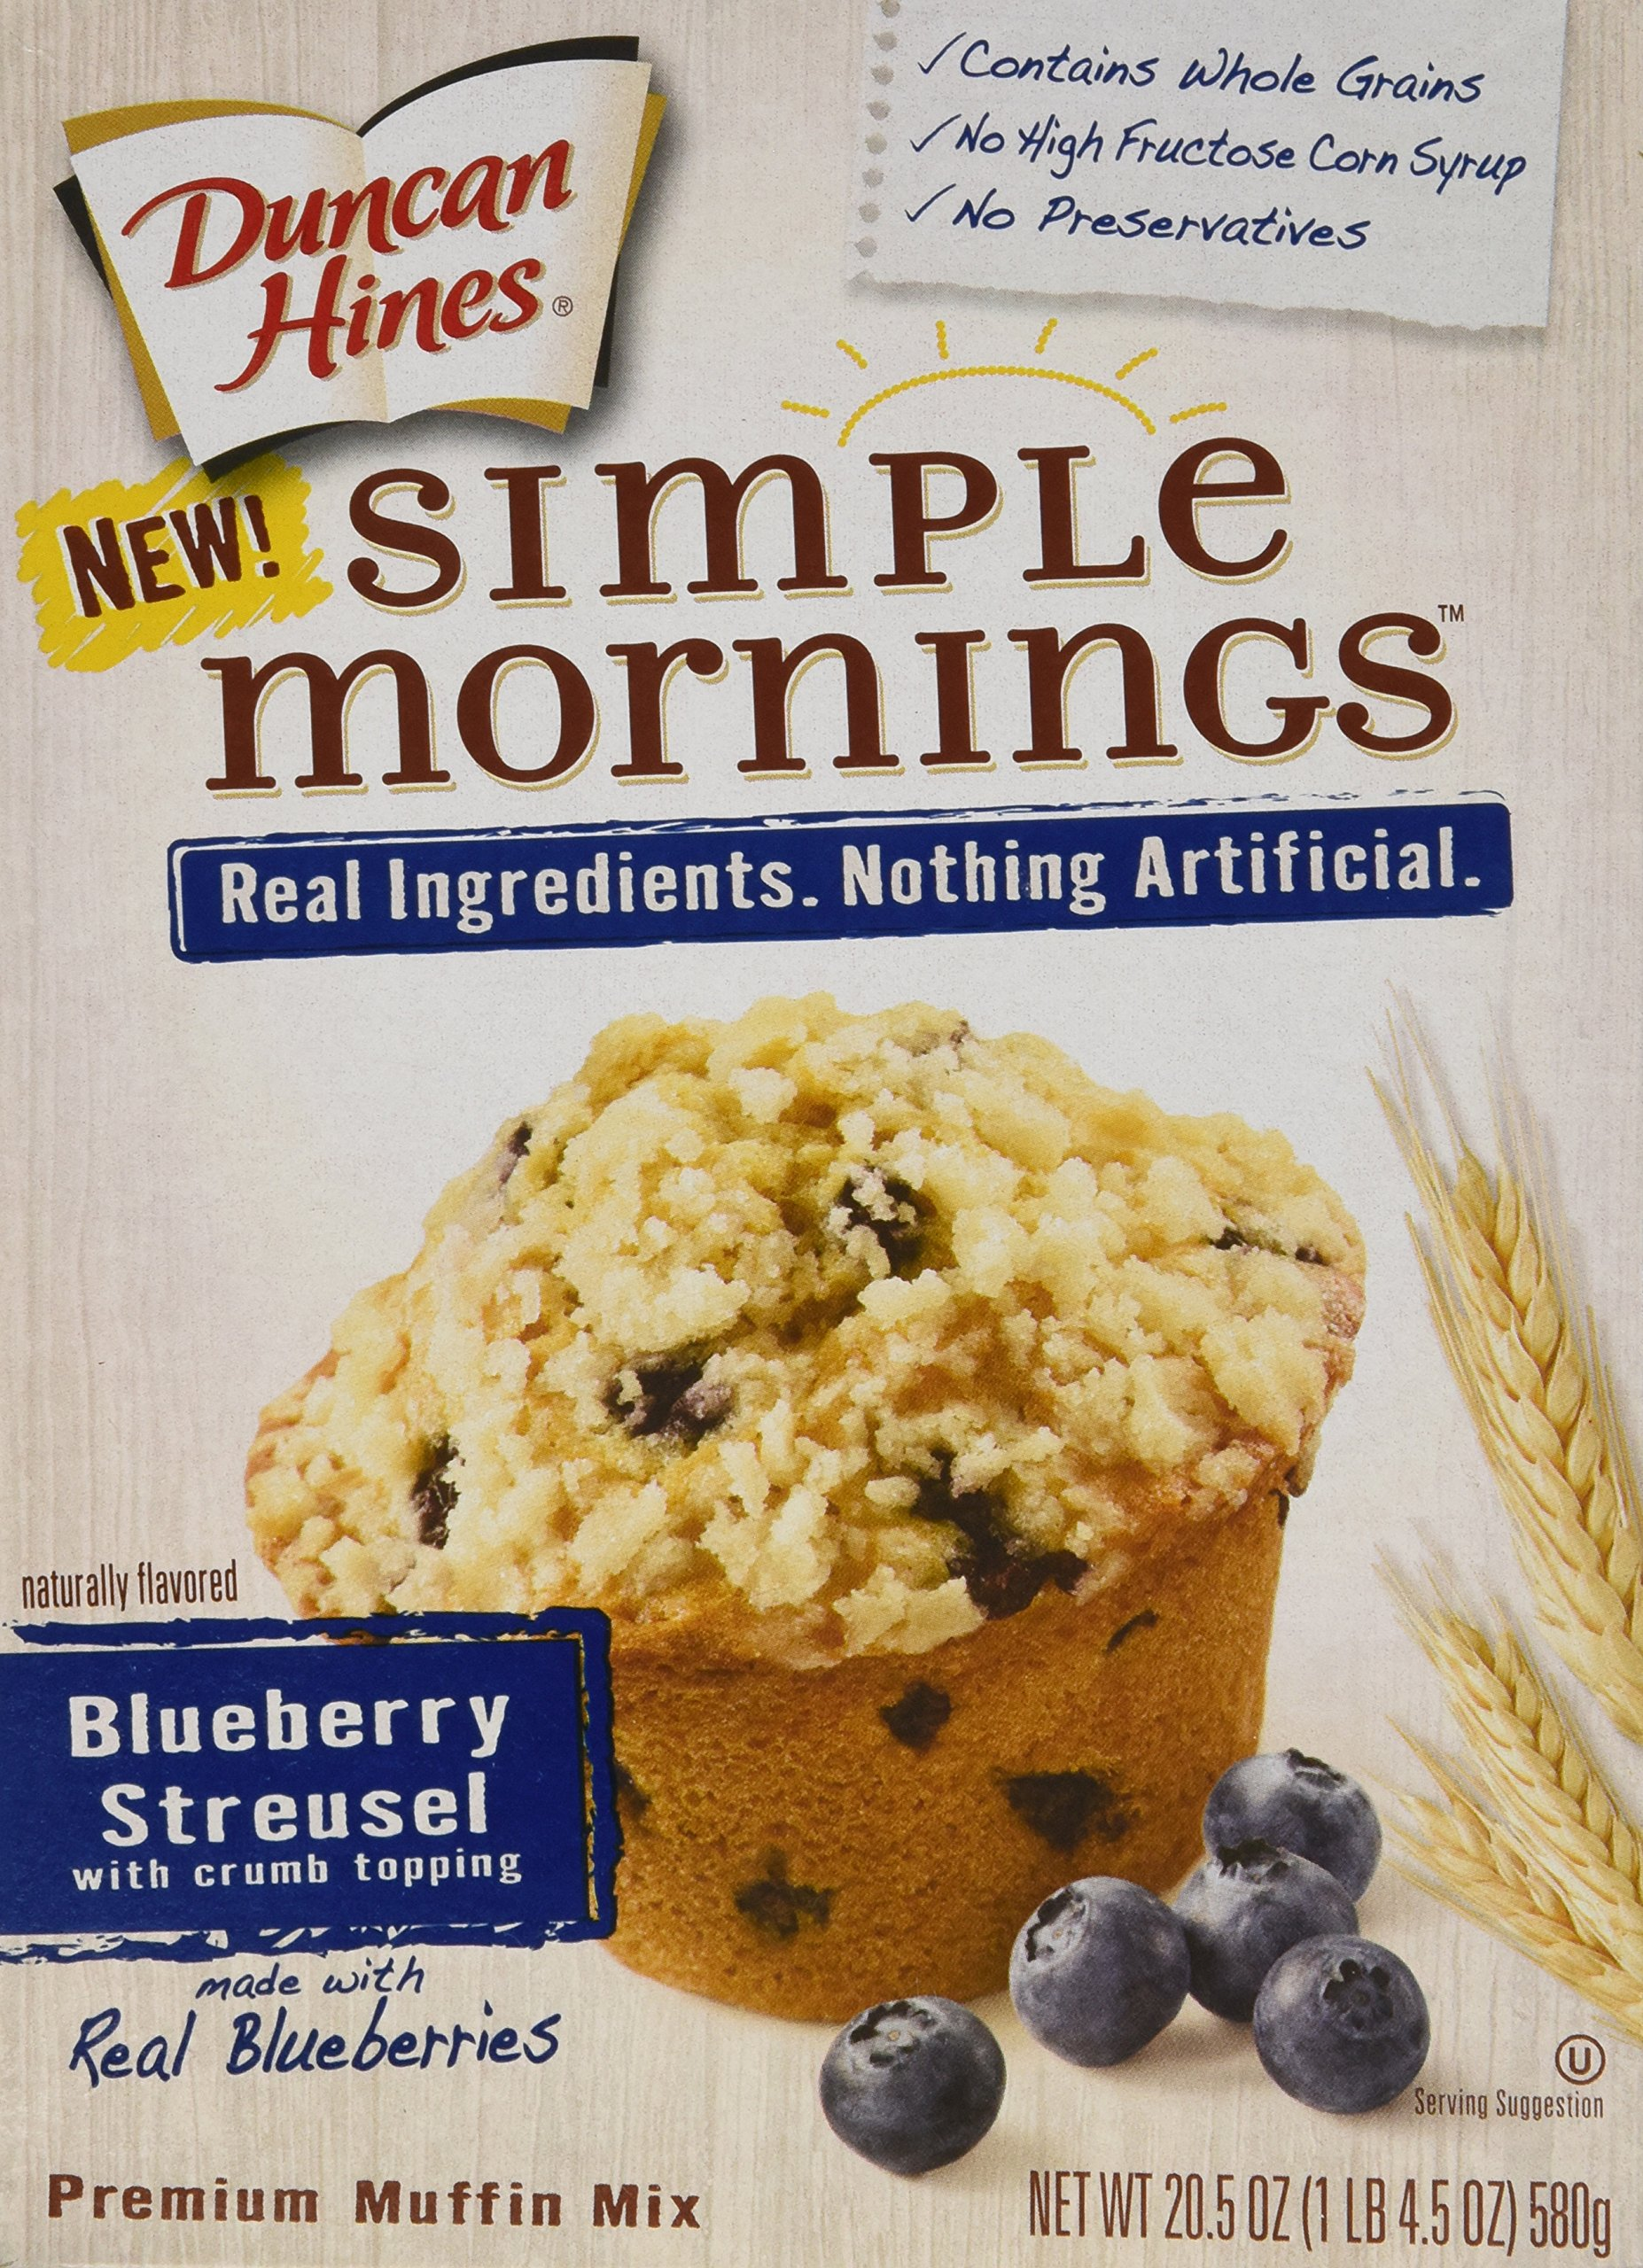 Duncan Hines Simple Mornings Muffin Mix - Blueberry Streusel - 20.5 oz - 2 Pack